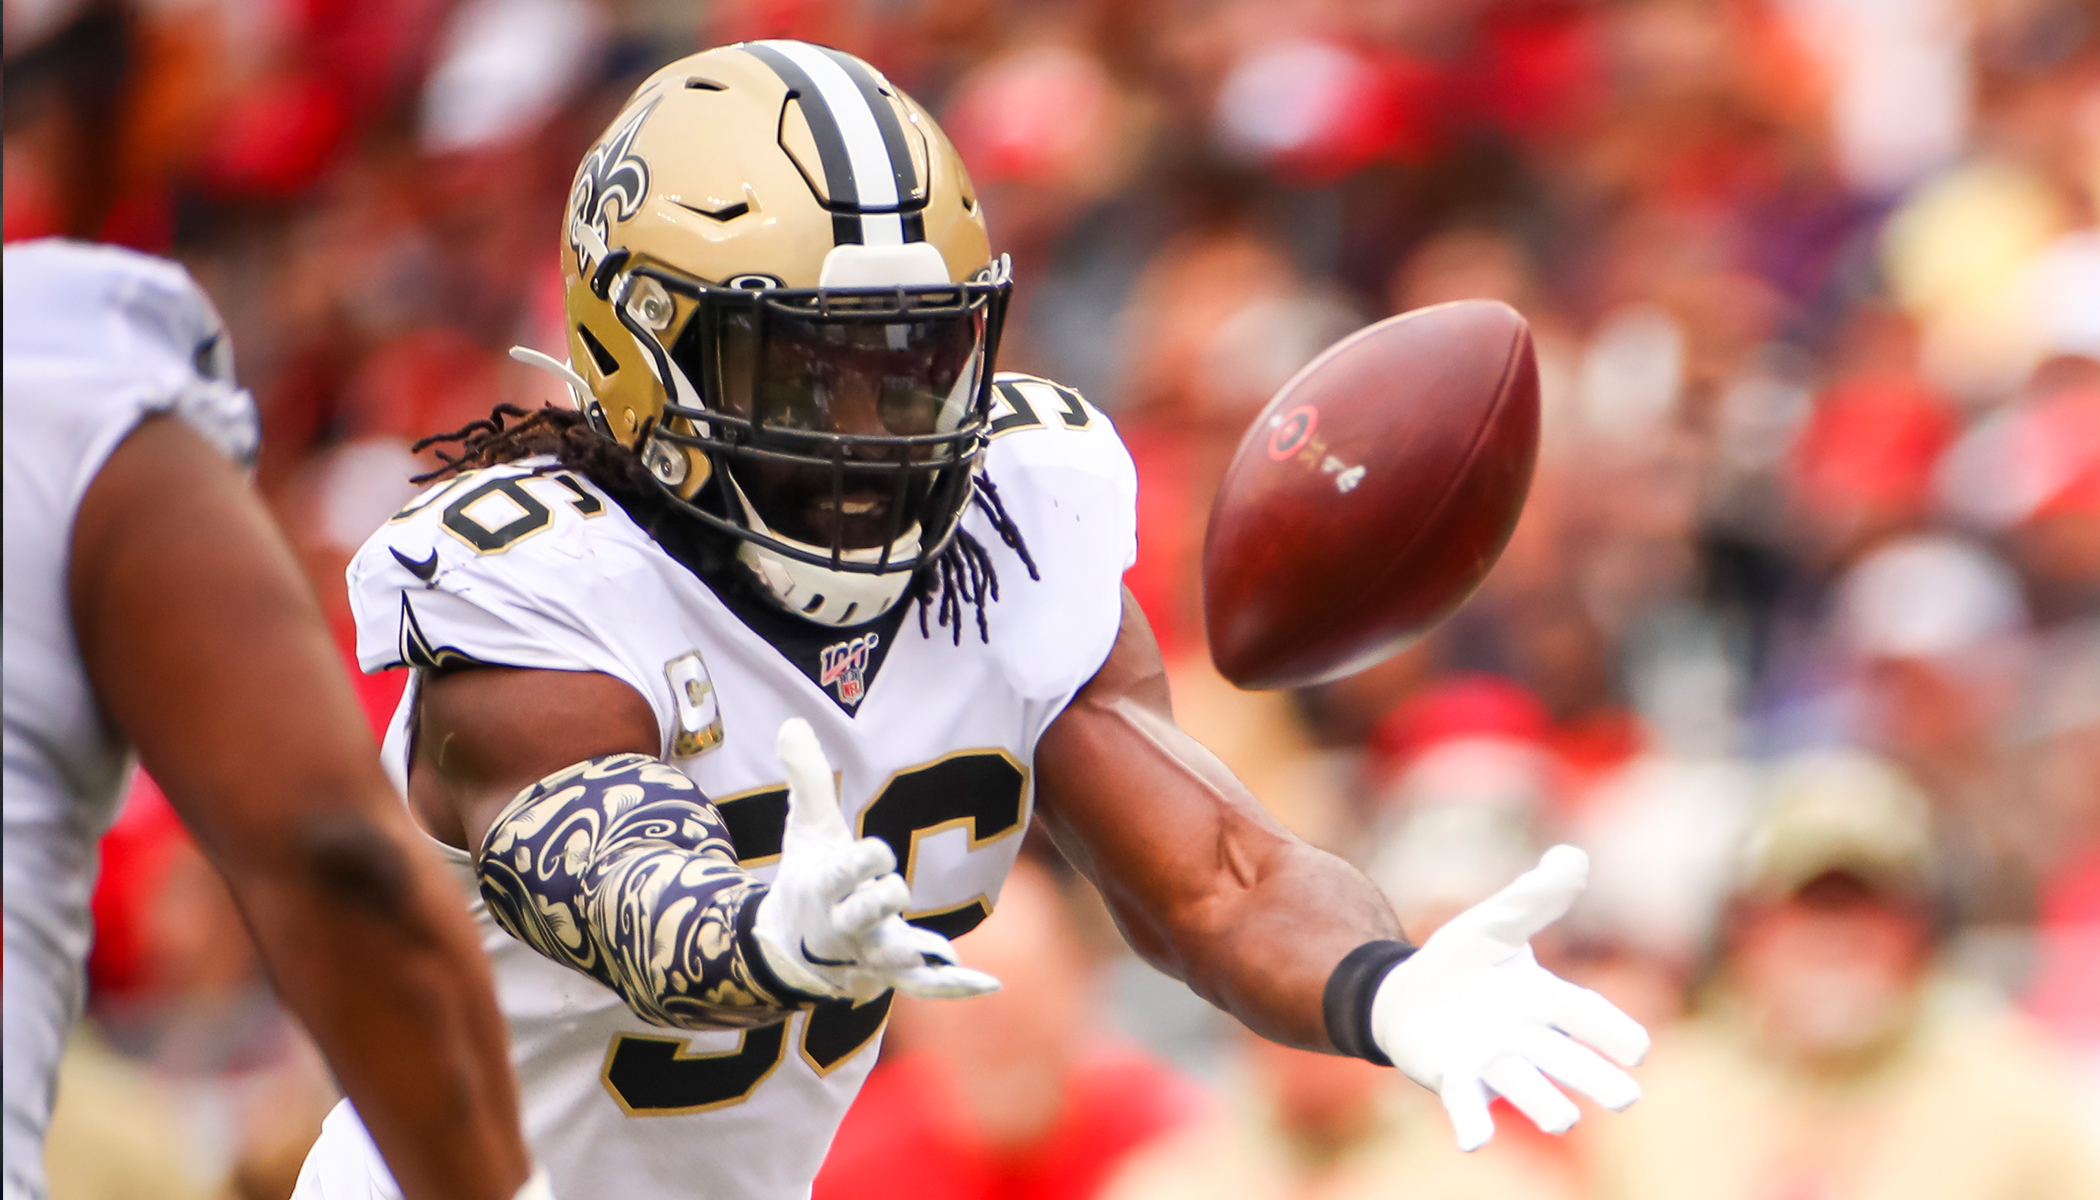 Saints Linebacker Fined by NFL for Wearing Headband With Words: 'Man of God,' but He Wins In a Big Way